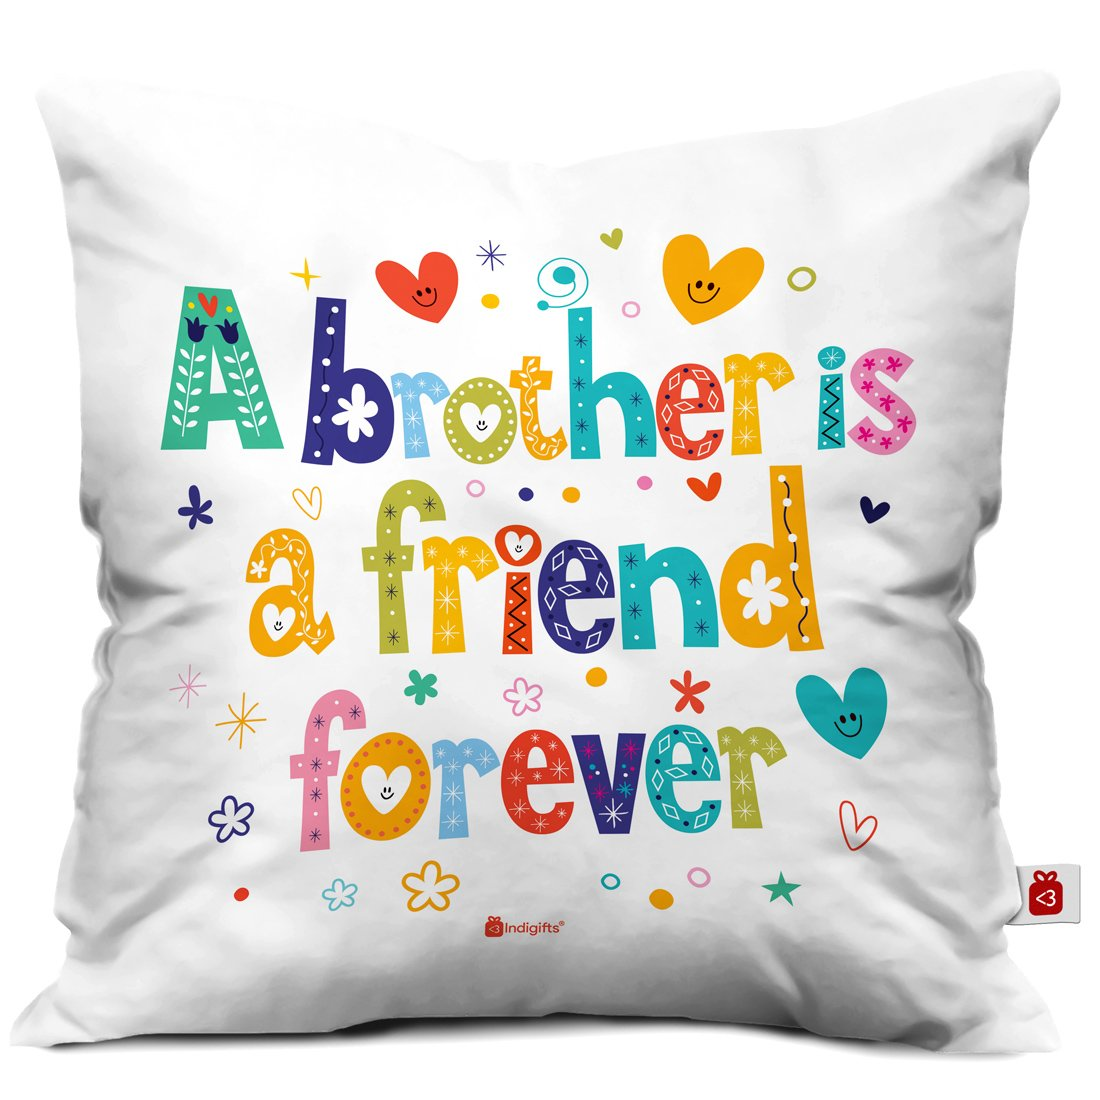 Indi ts Bro Is A Friend Forever Quote Printed Cushion Cover 12